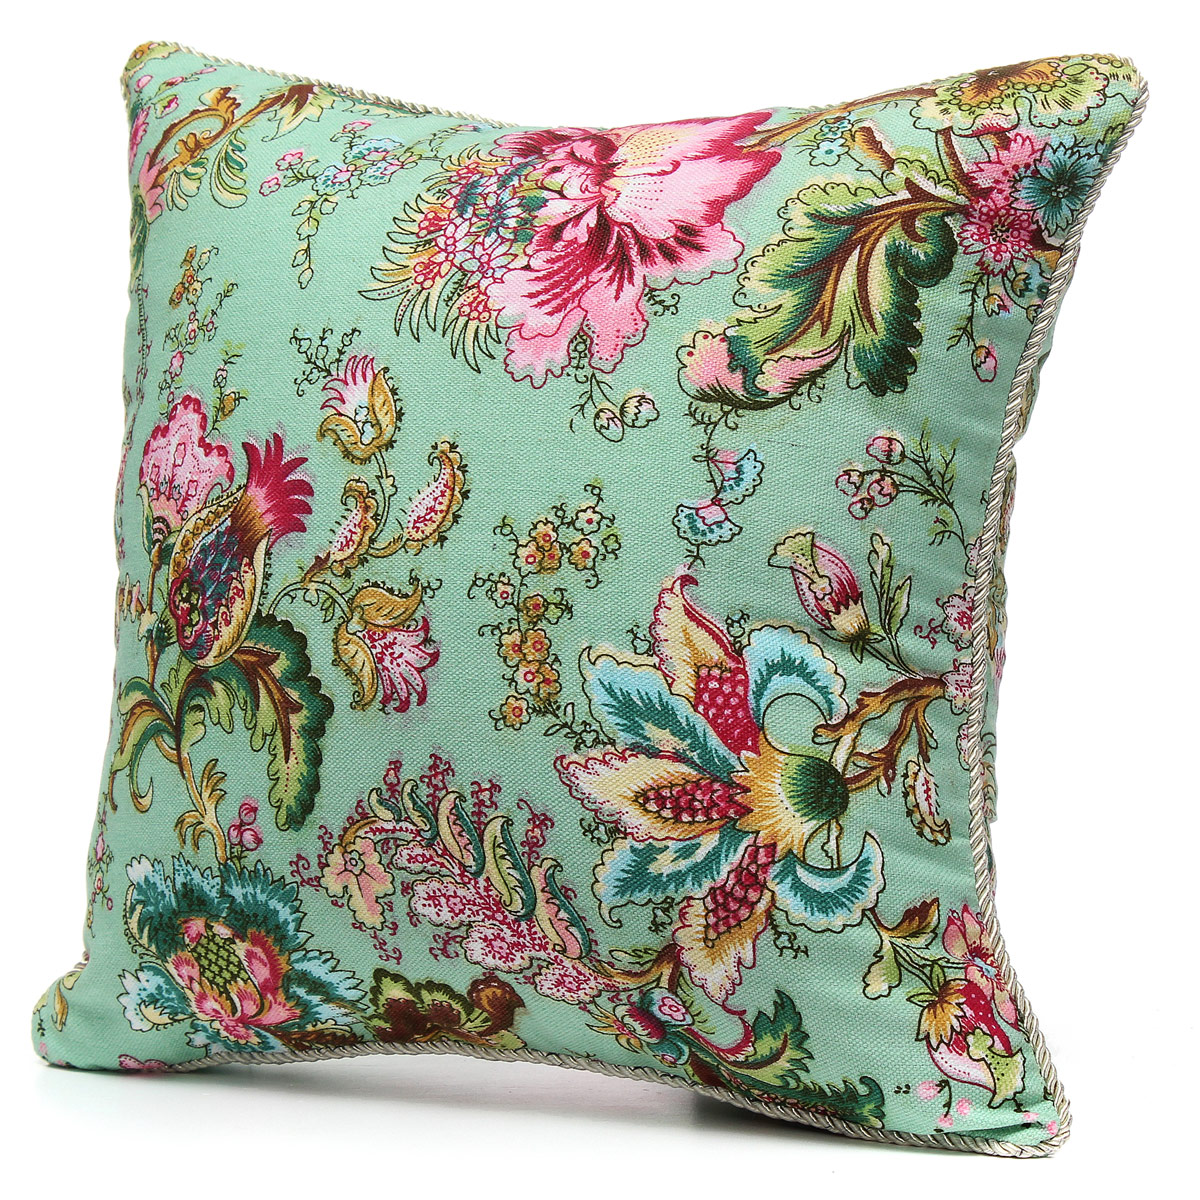 Square Throw Pillow Cases : Vintage Fashion Square Throw Pillow Cases Home Sofa Decorative Cushion Cover